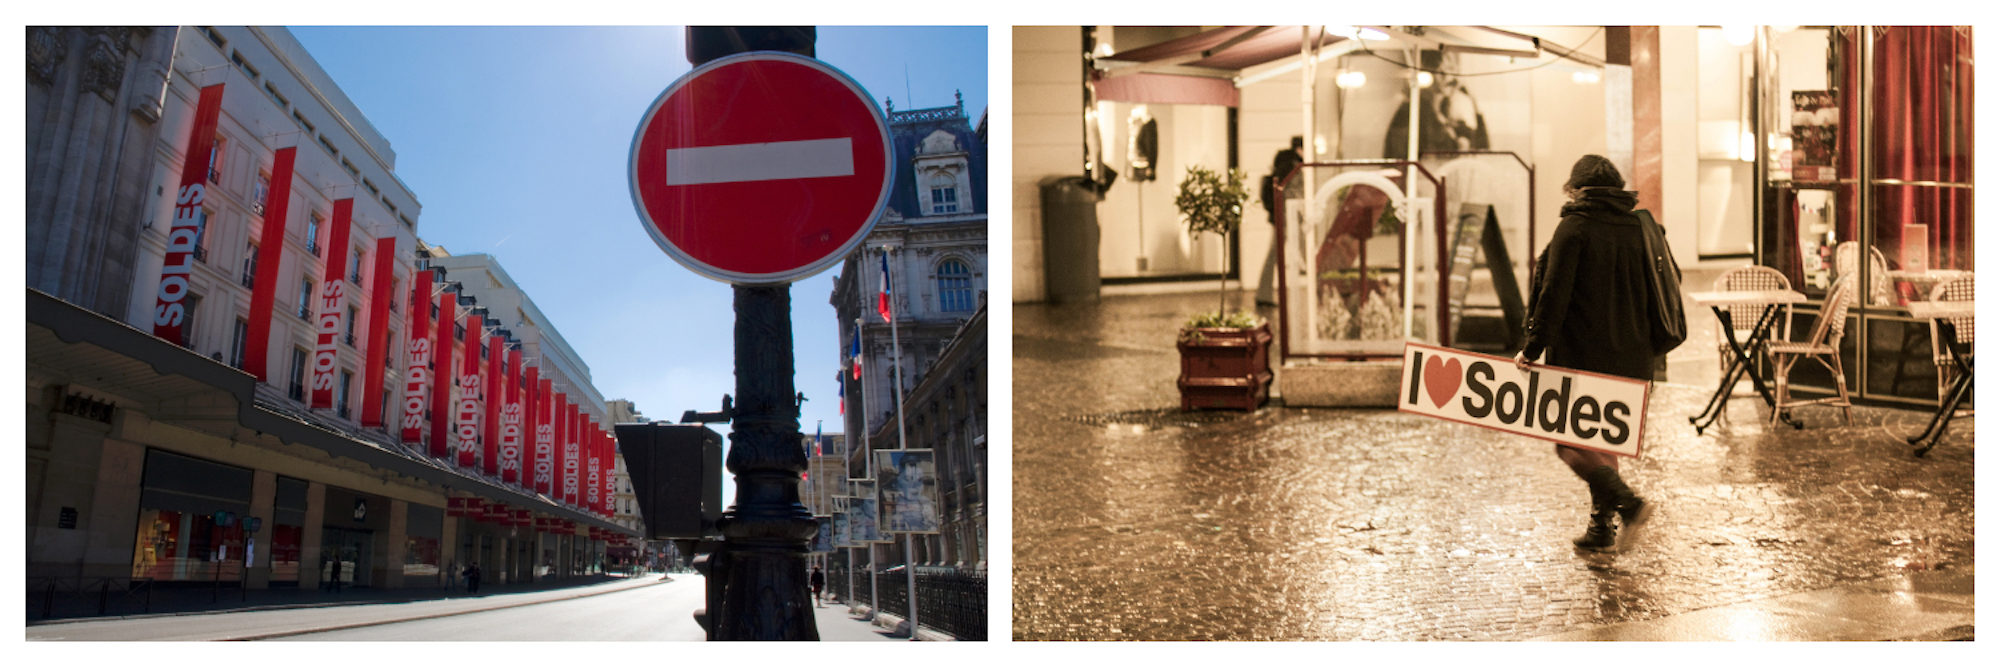 Where to do shopping during the winter sales in Paris including its department stores (left). Woman walking on cobblestone street carrying an 'I love the sales' sign during the sales in Paris (right).